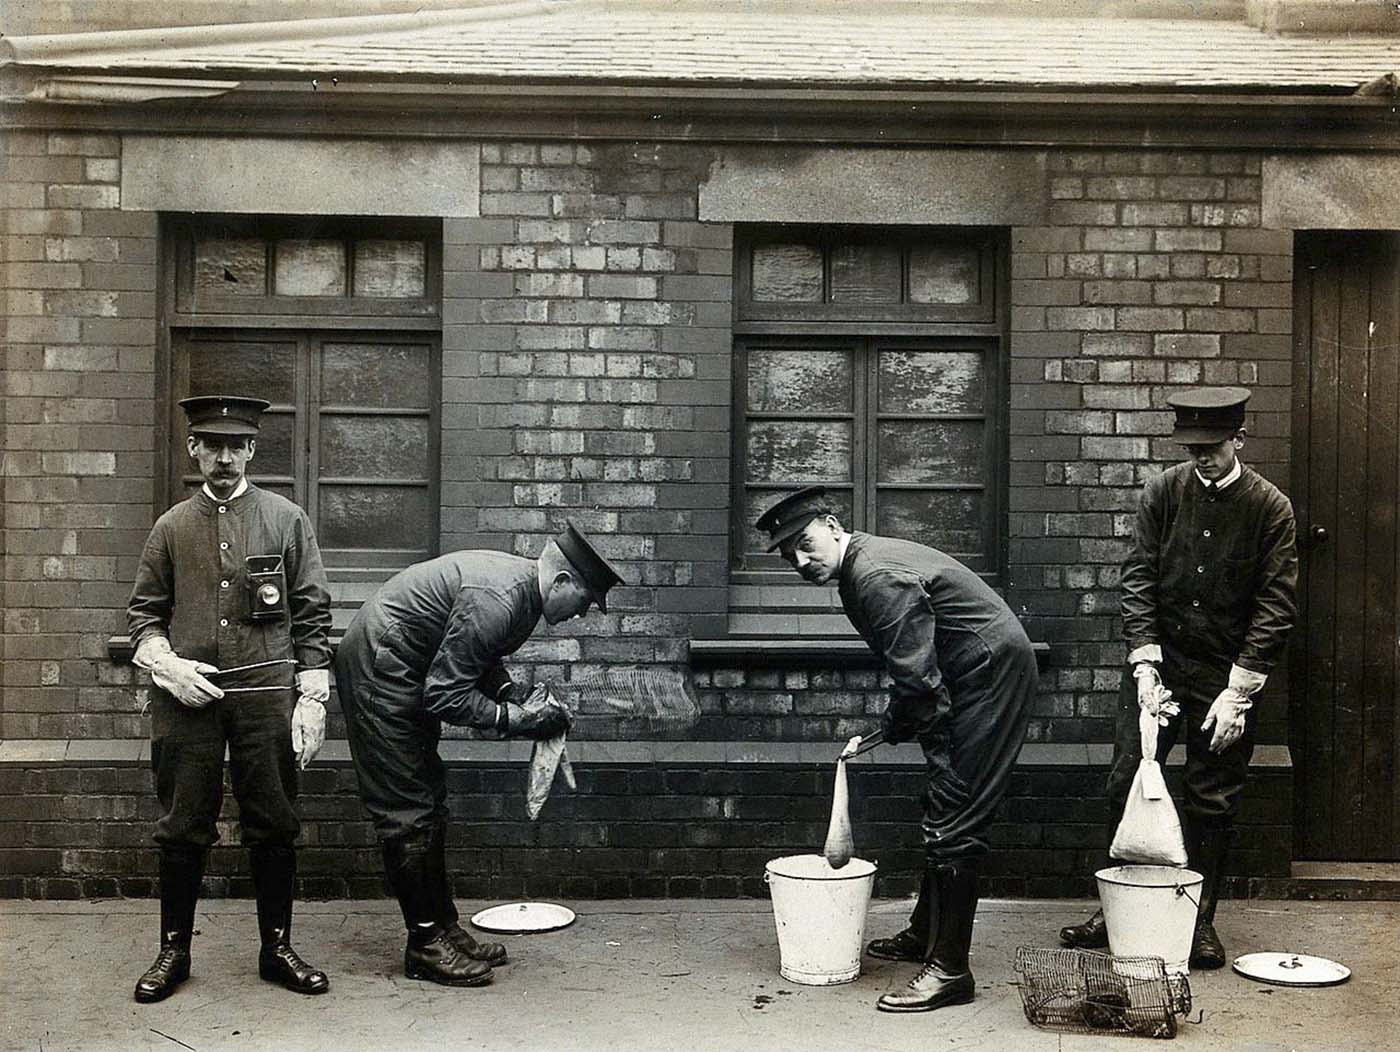 Liverpool Port Sanitary Authority rat-catchers dipping rats in buckets of petrol to kill fleas for plague control. 1900s.